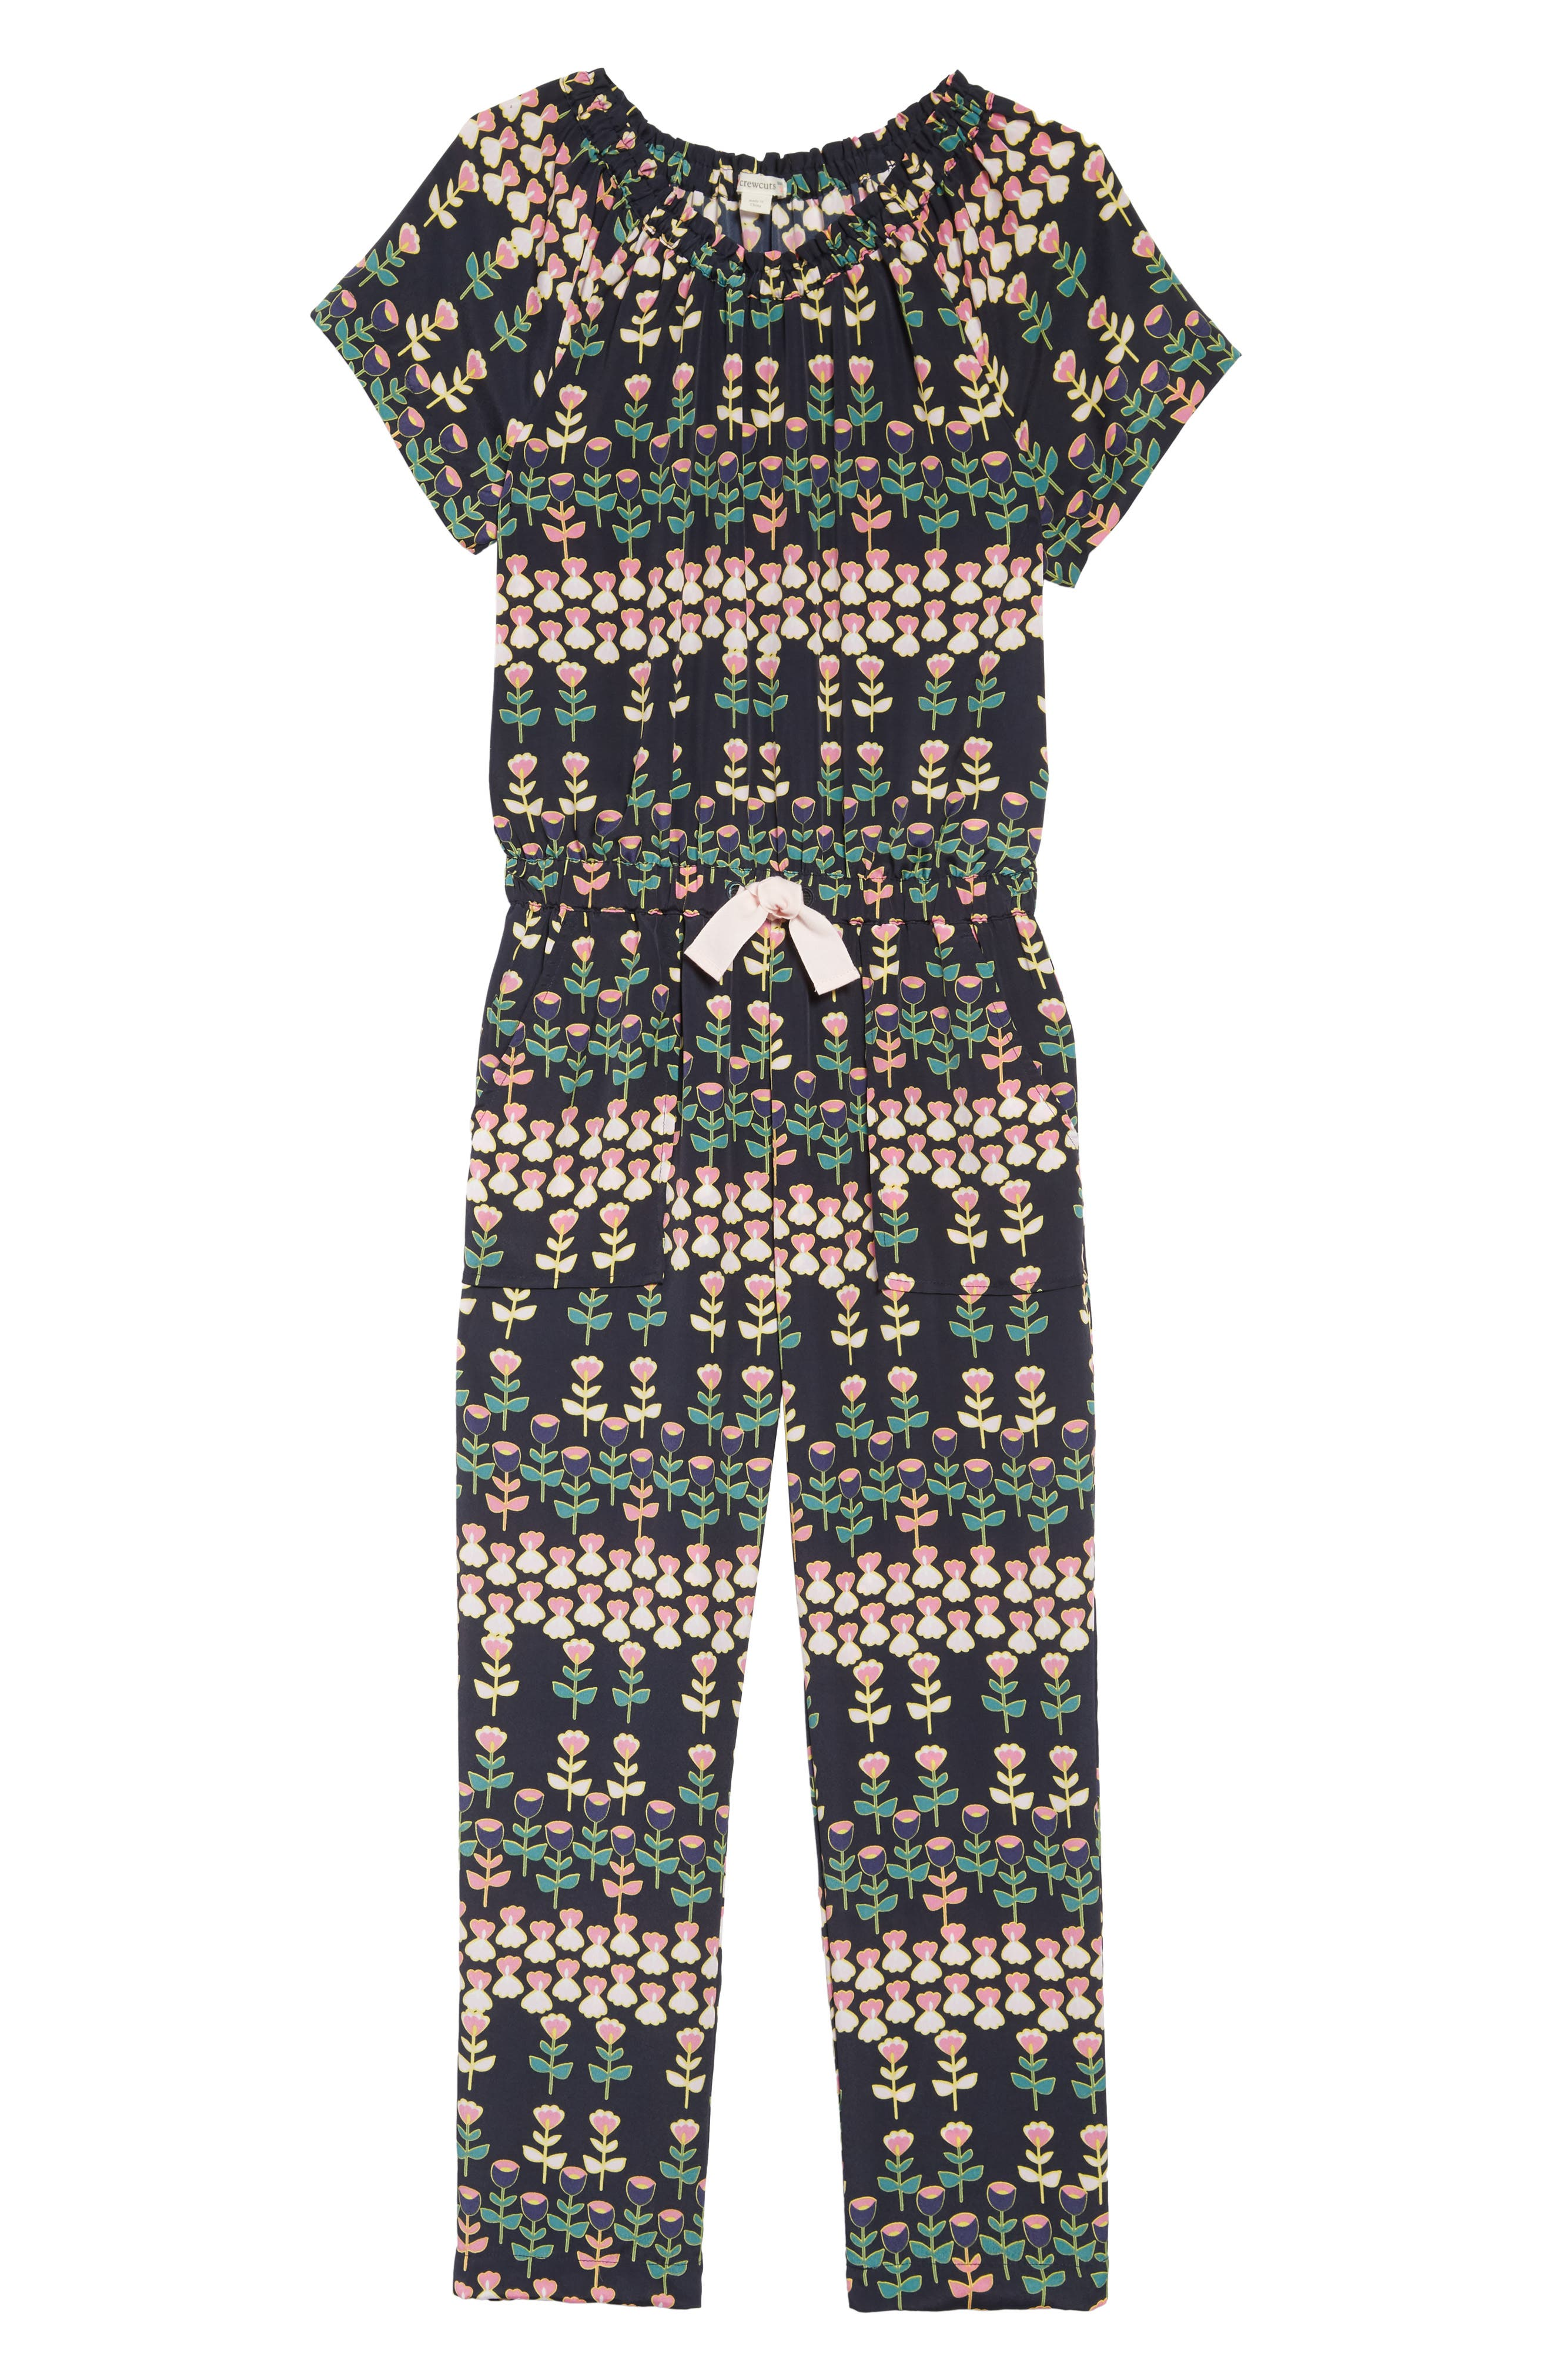 Toddler Girls Crewcuts By Jcrew Naomi Floral Print Jumpsuit Size 2T  Grey